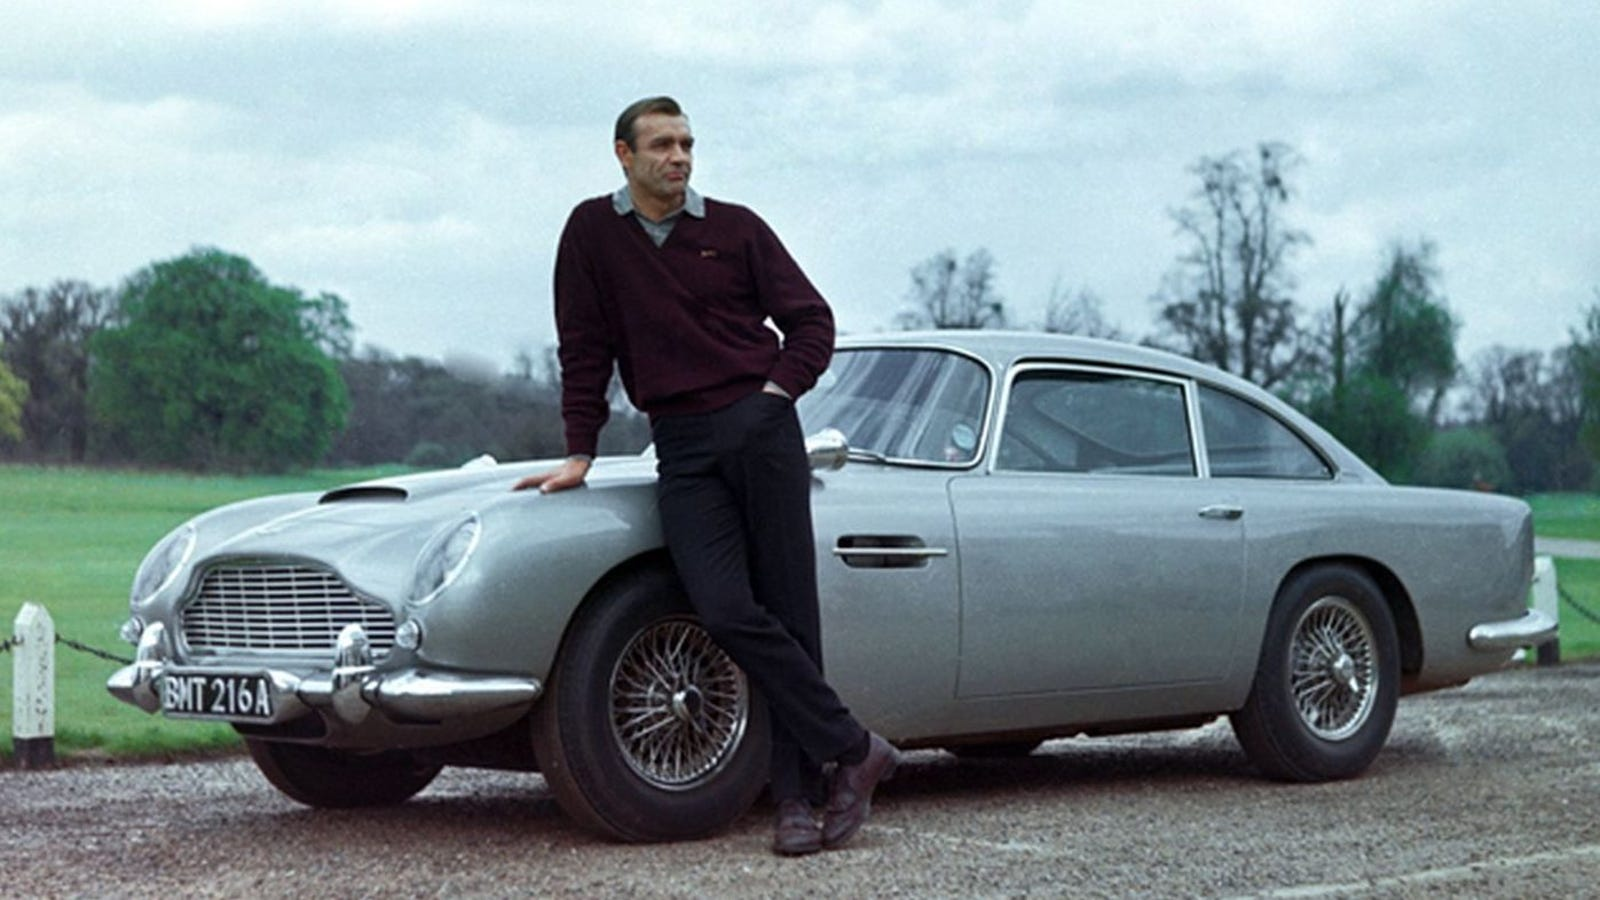 the leaked aston martin db5 lego kit looks like it's in excruciating